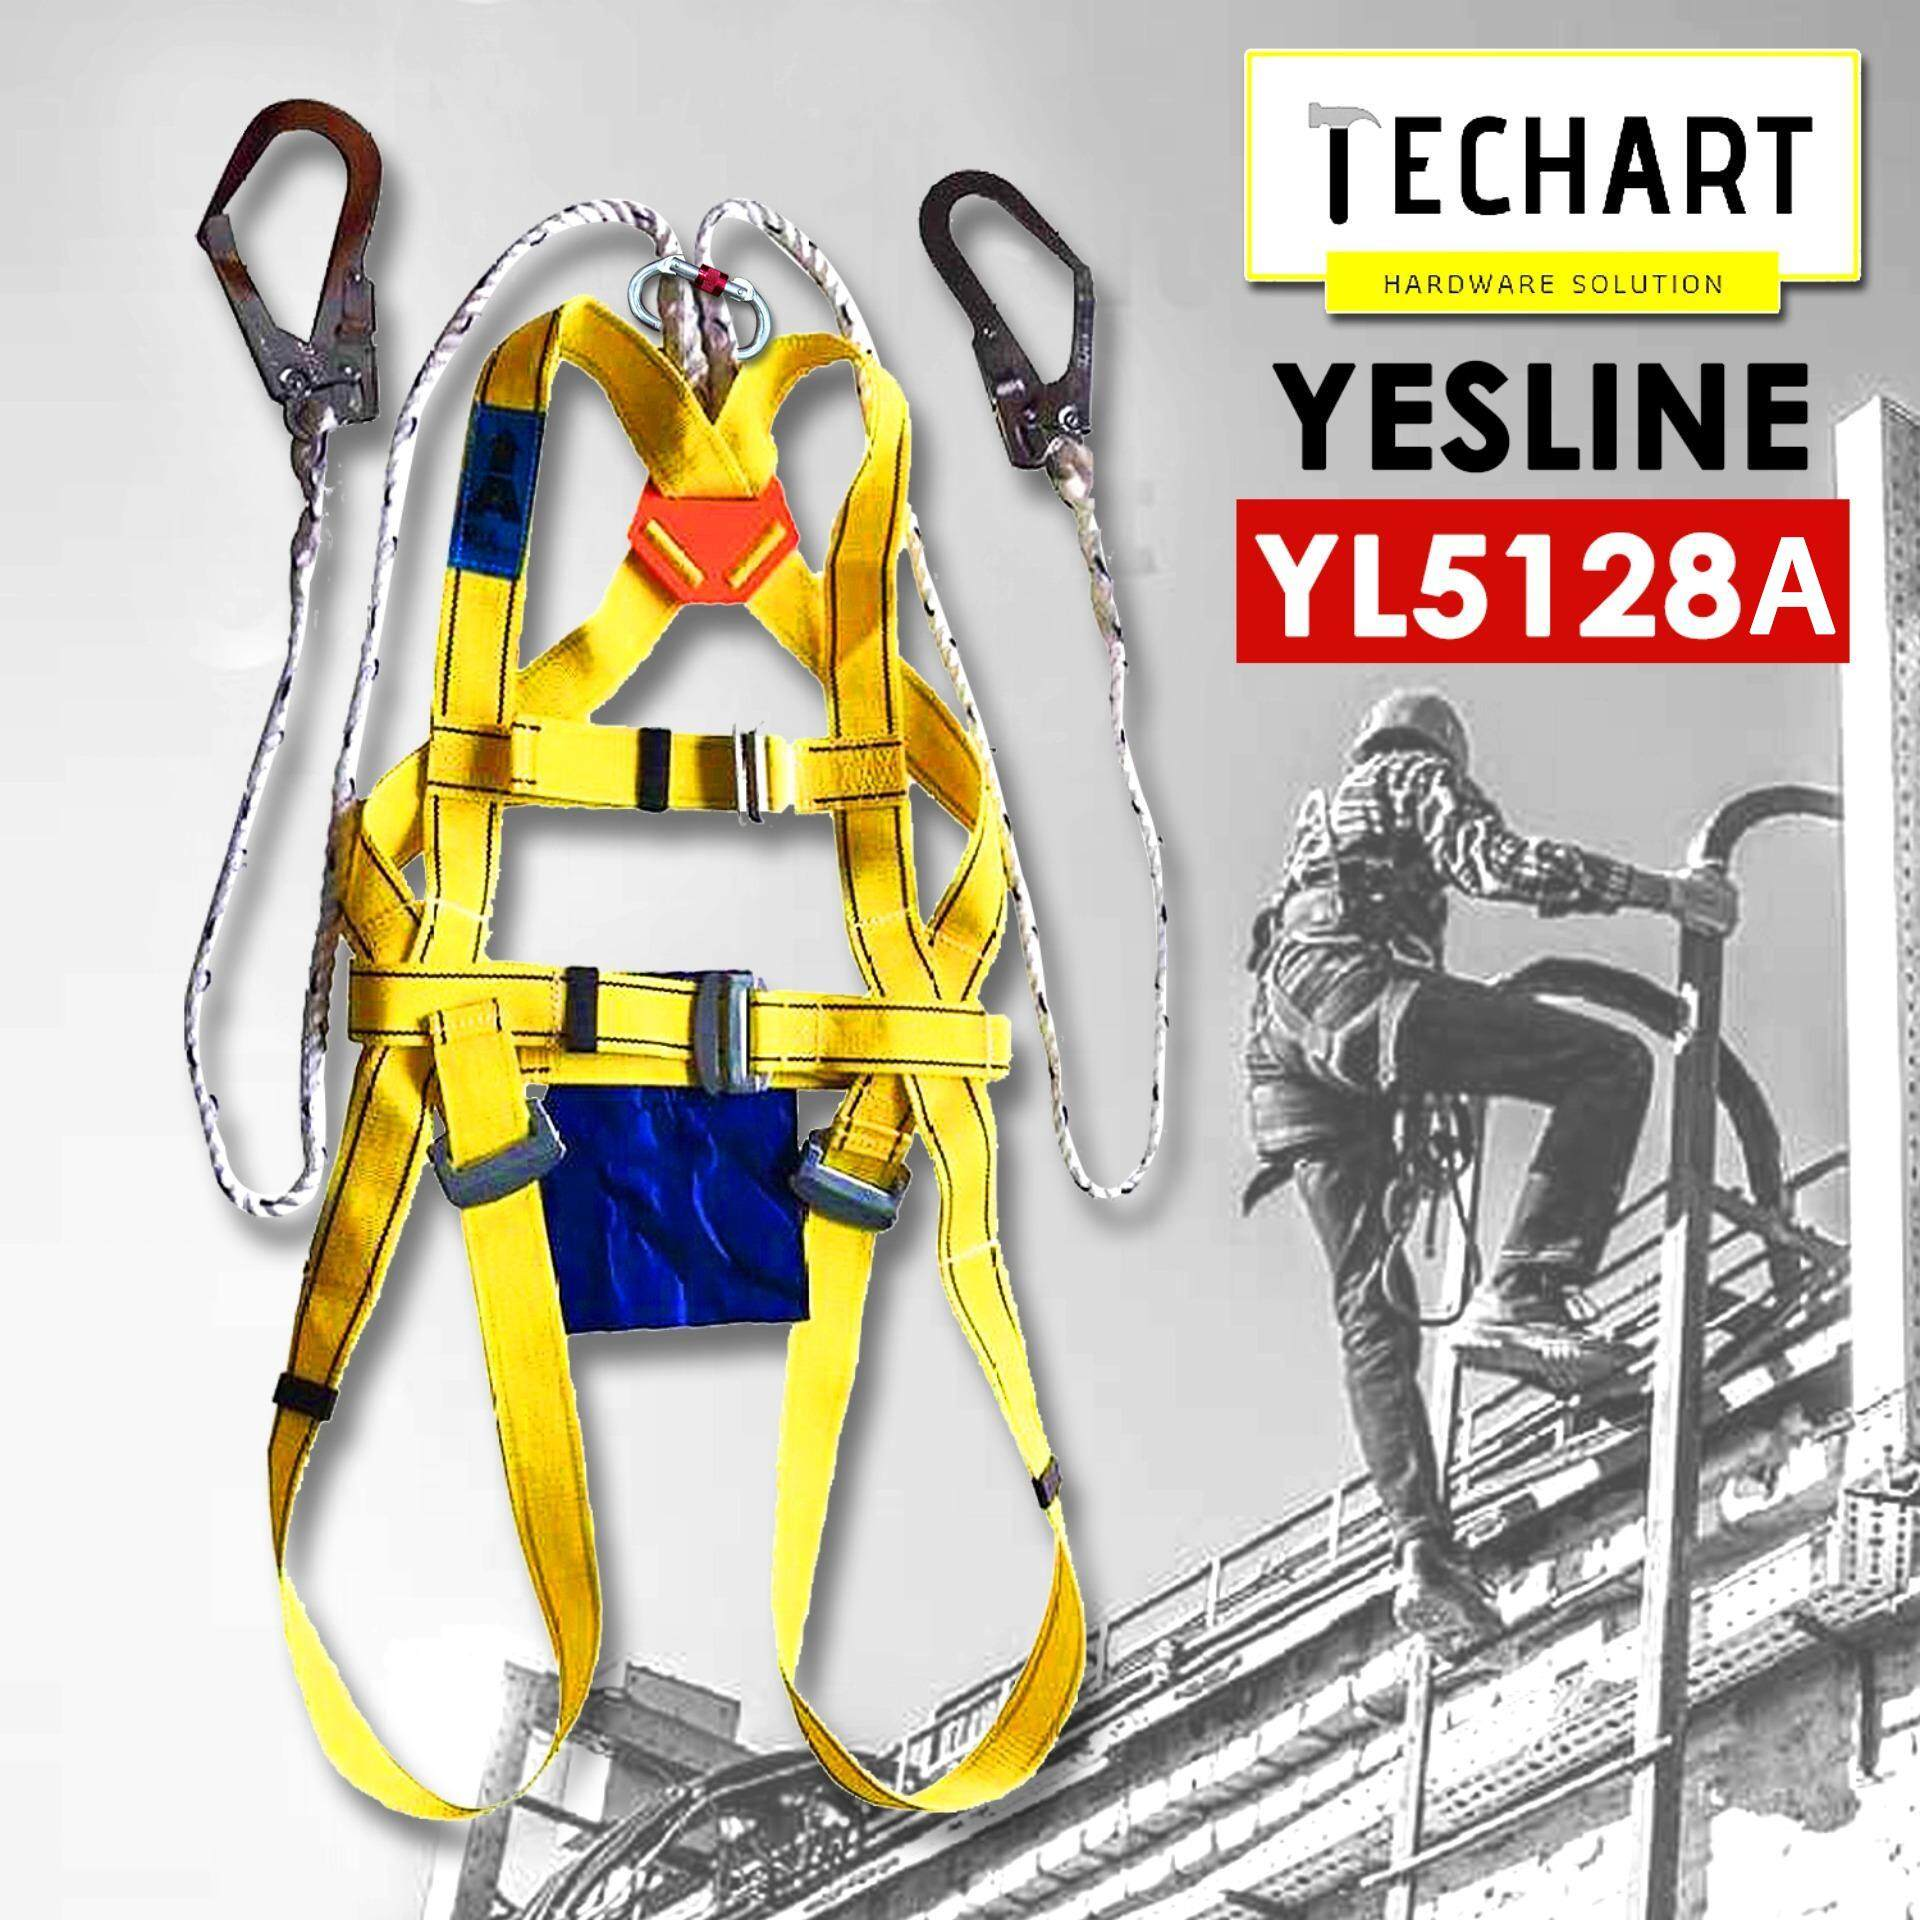 YESLINE YL5128A Full Body Harness Built-in 2 Lanyard & 2 Large Hook with 1 Carabiner